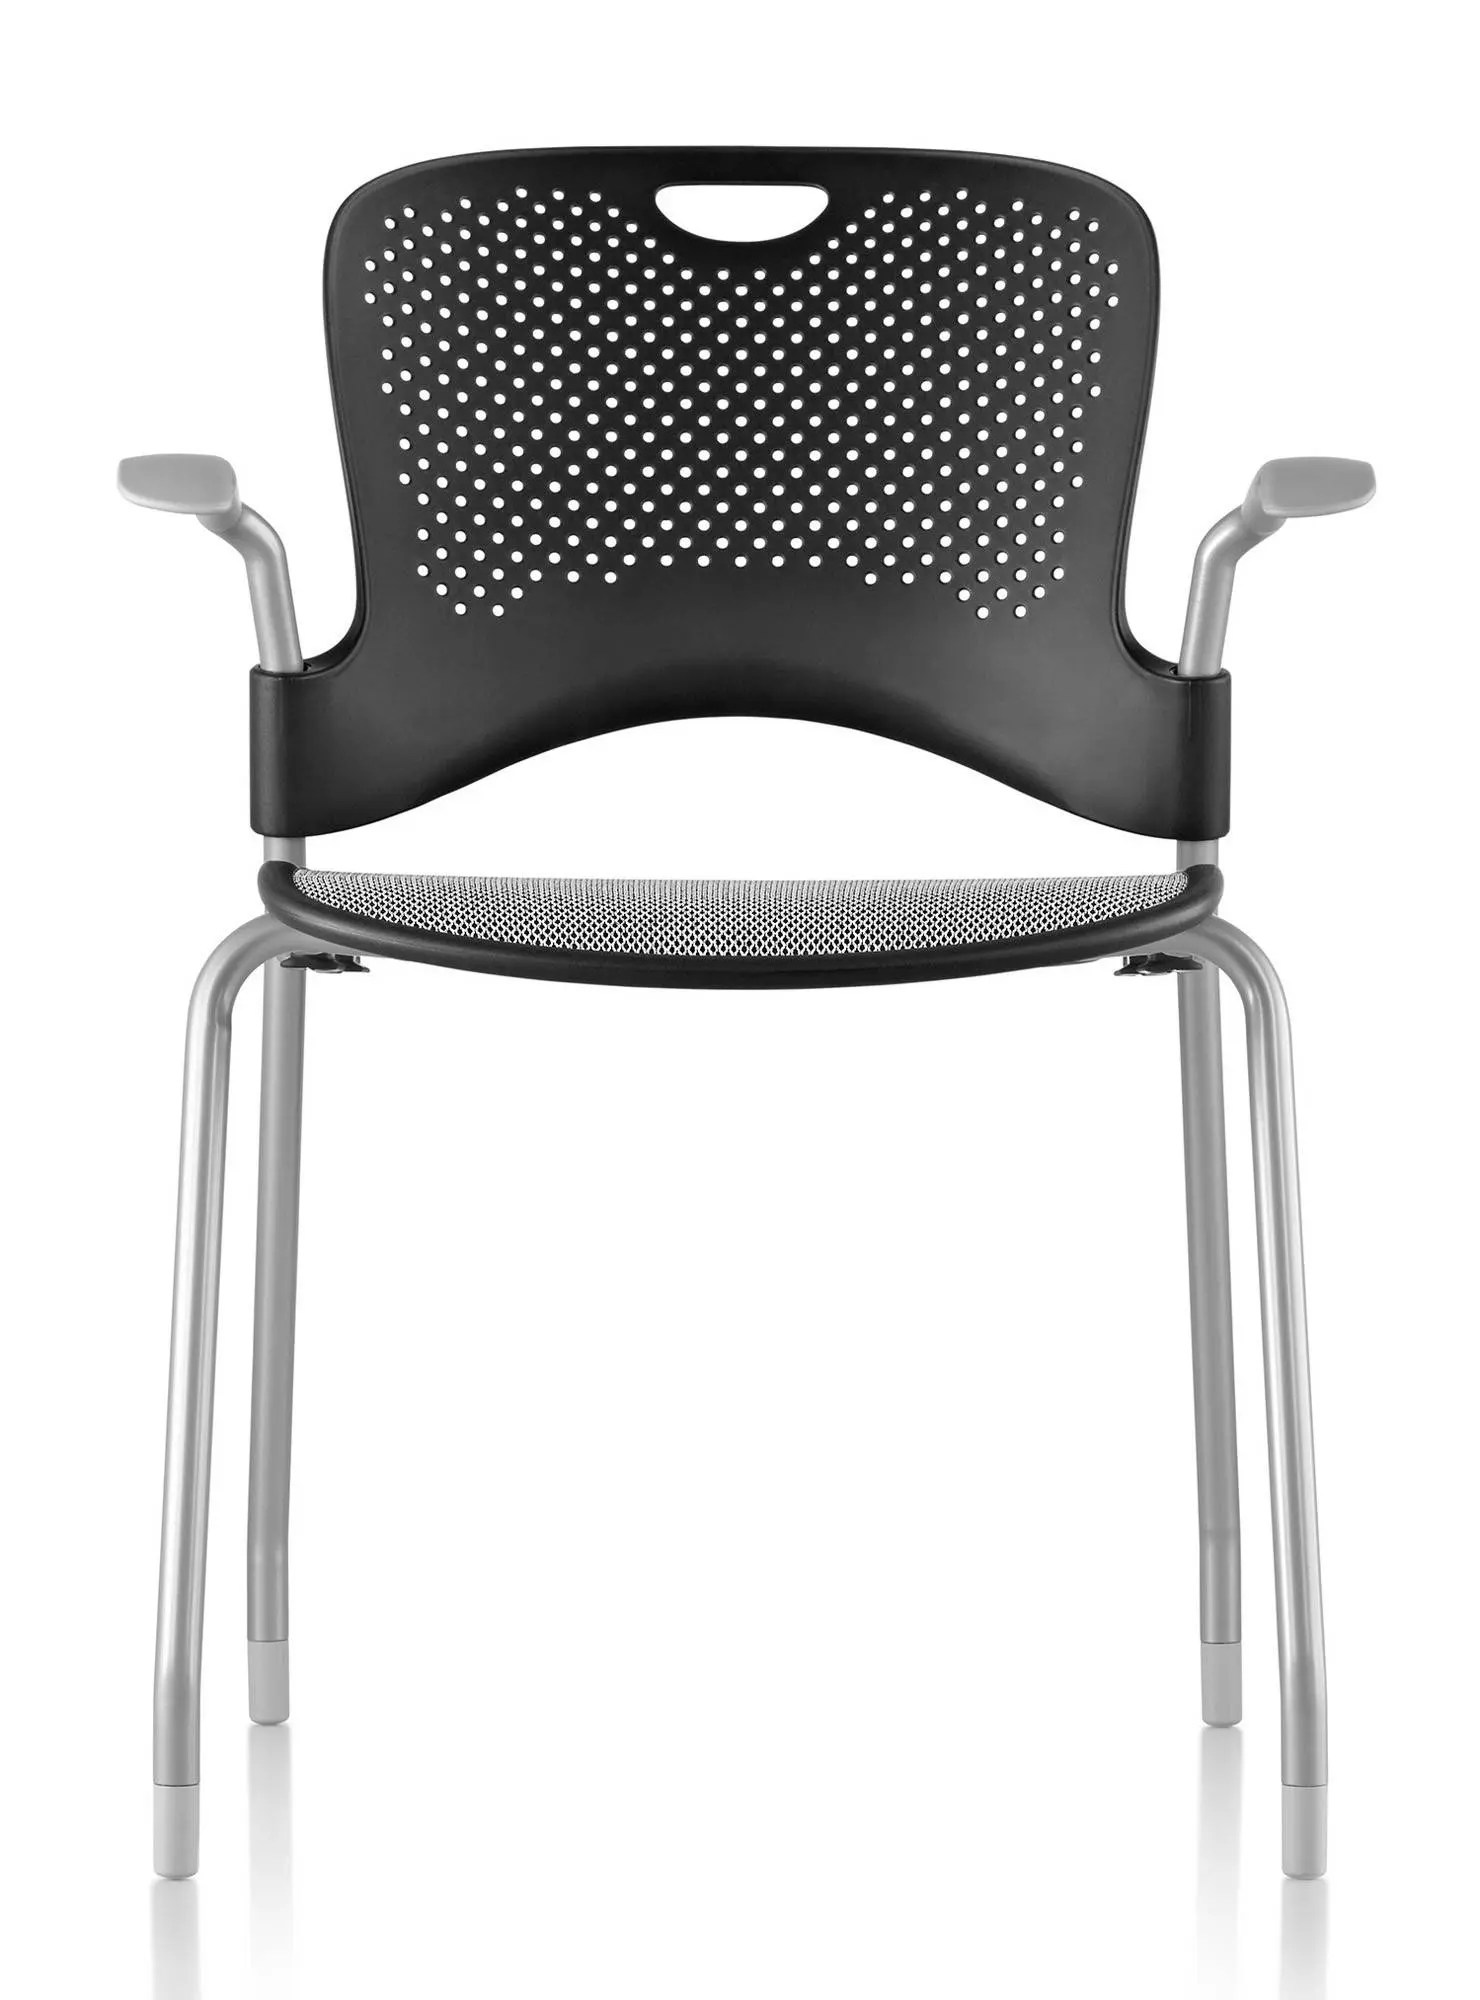 herman miller caper chair covers grand rapids mi stacking with flexnet gr